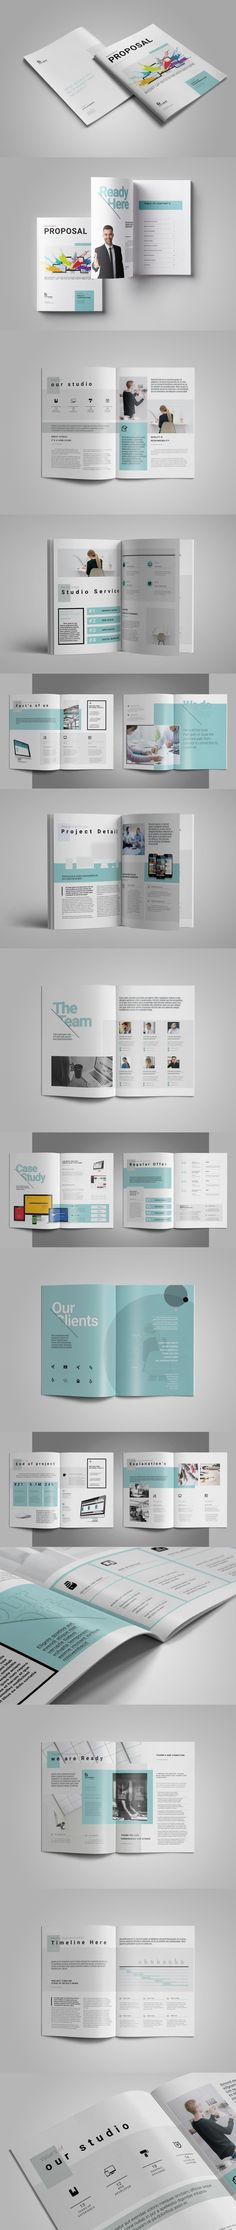 Clean Proposal Template InDesign INDD - 24 Pages, Two different Sizes A4 and US Letter